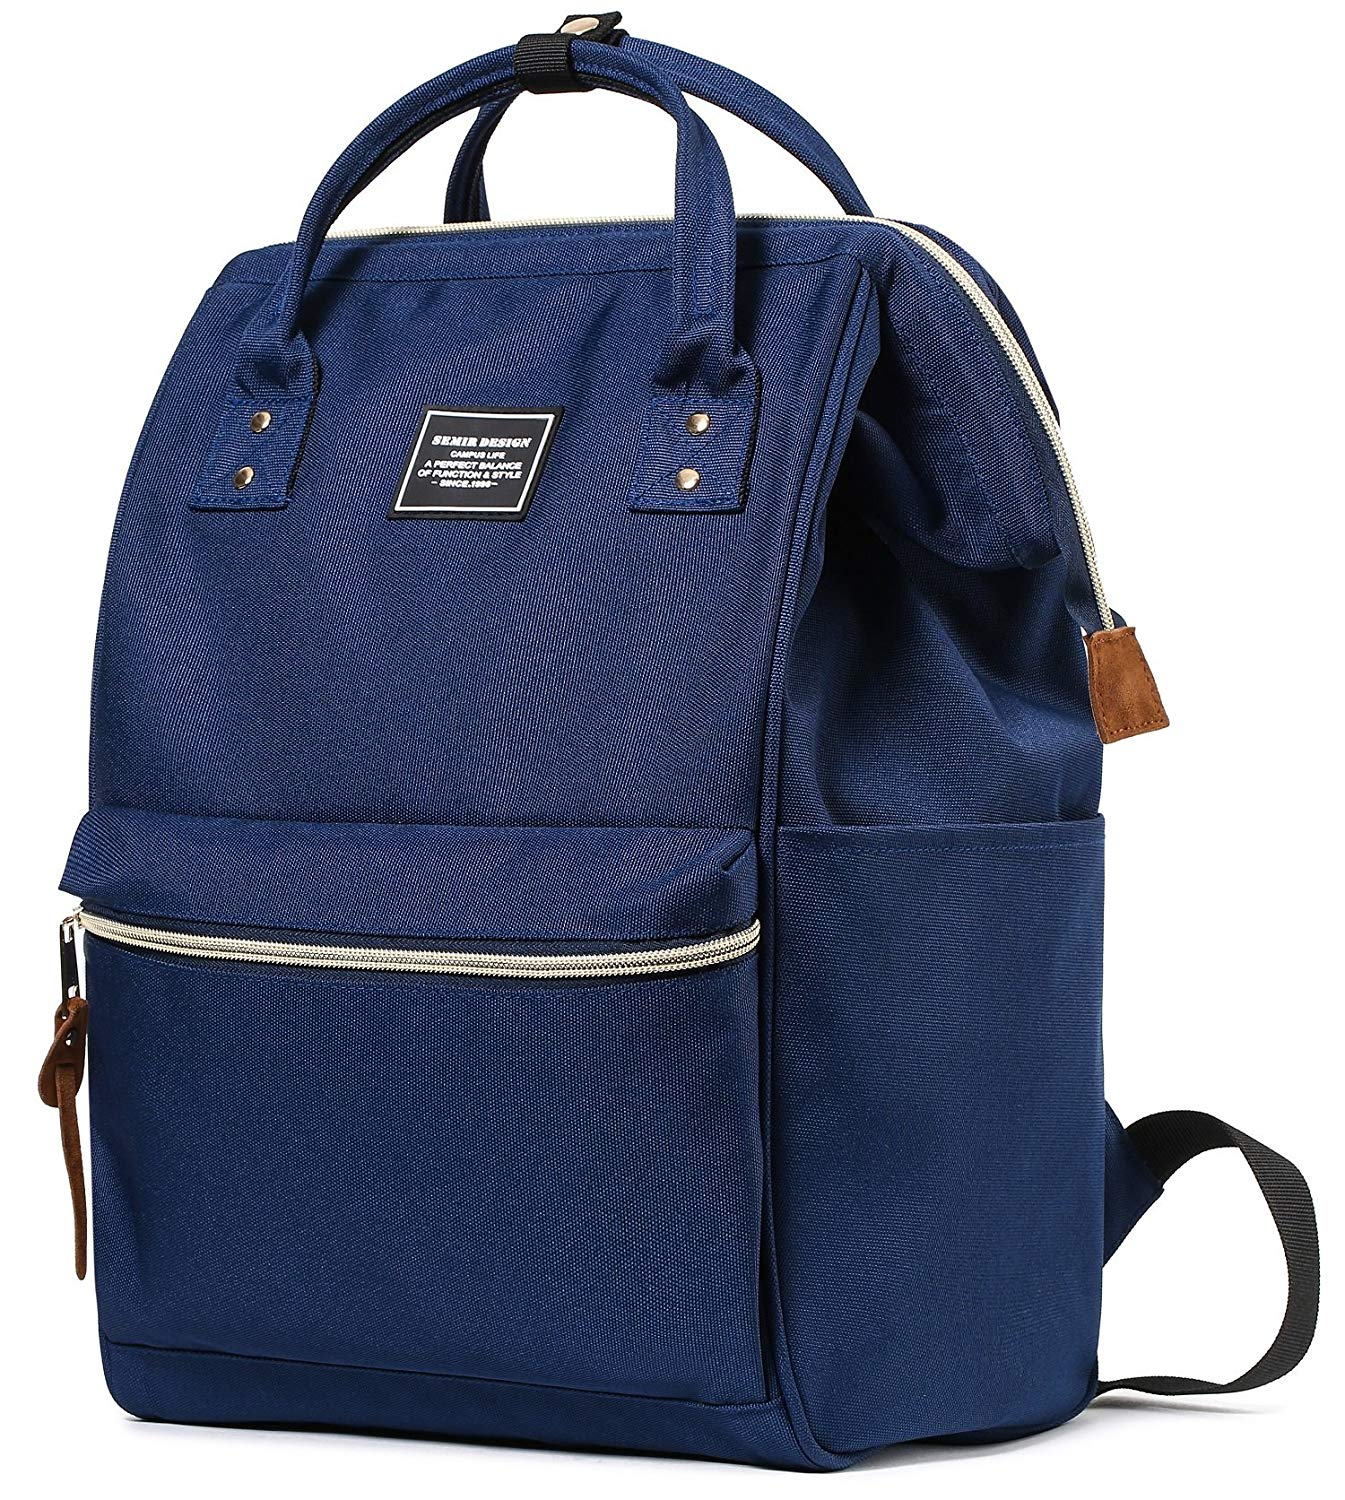 e0294a51372f Get Quotations · SEMIR 13 Inch Fashion Stylish Ladies Computer Best  Business Travel Picnic College Backpacks School Canvas Laptop